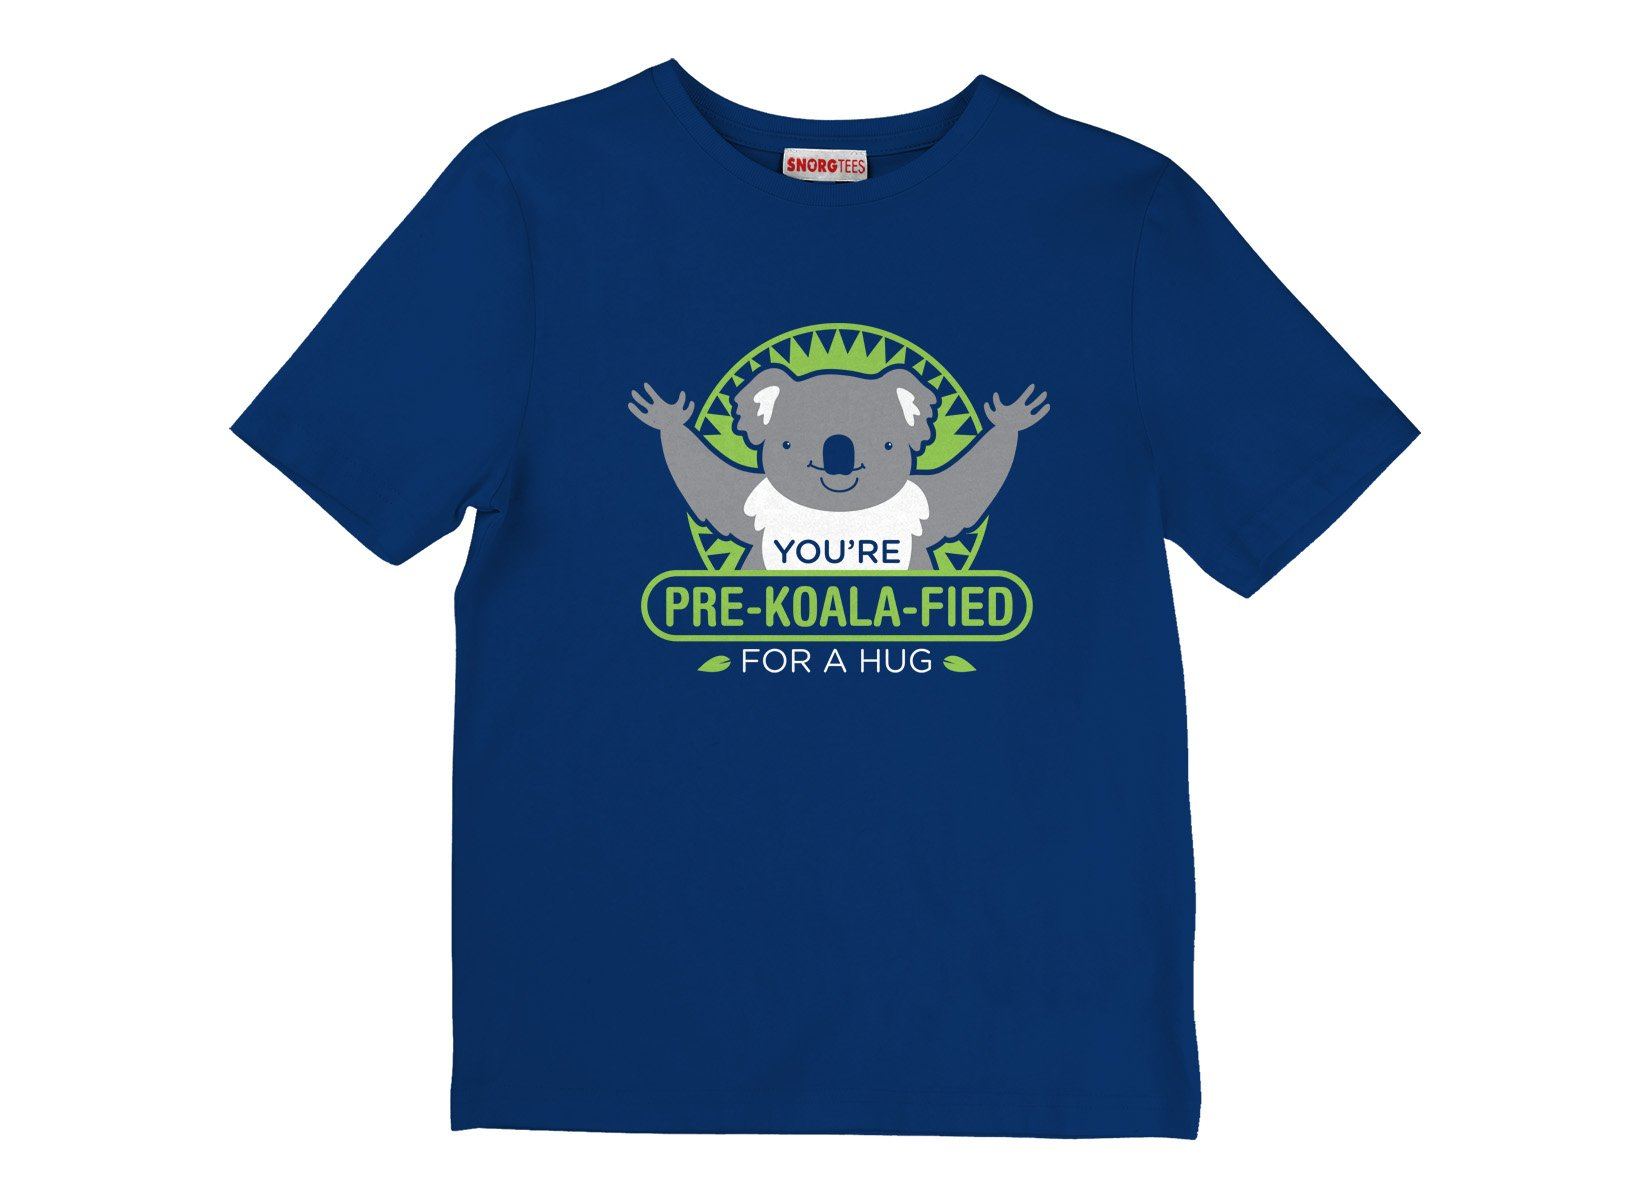 You're Pre-Koala-Fied For A Hug on Kids T-Shirt